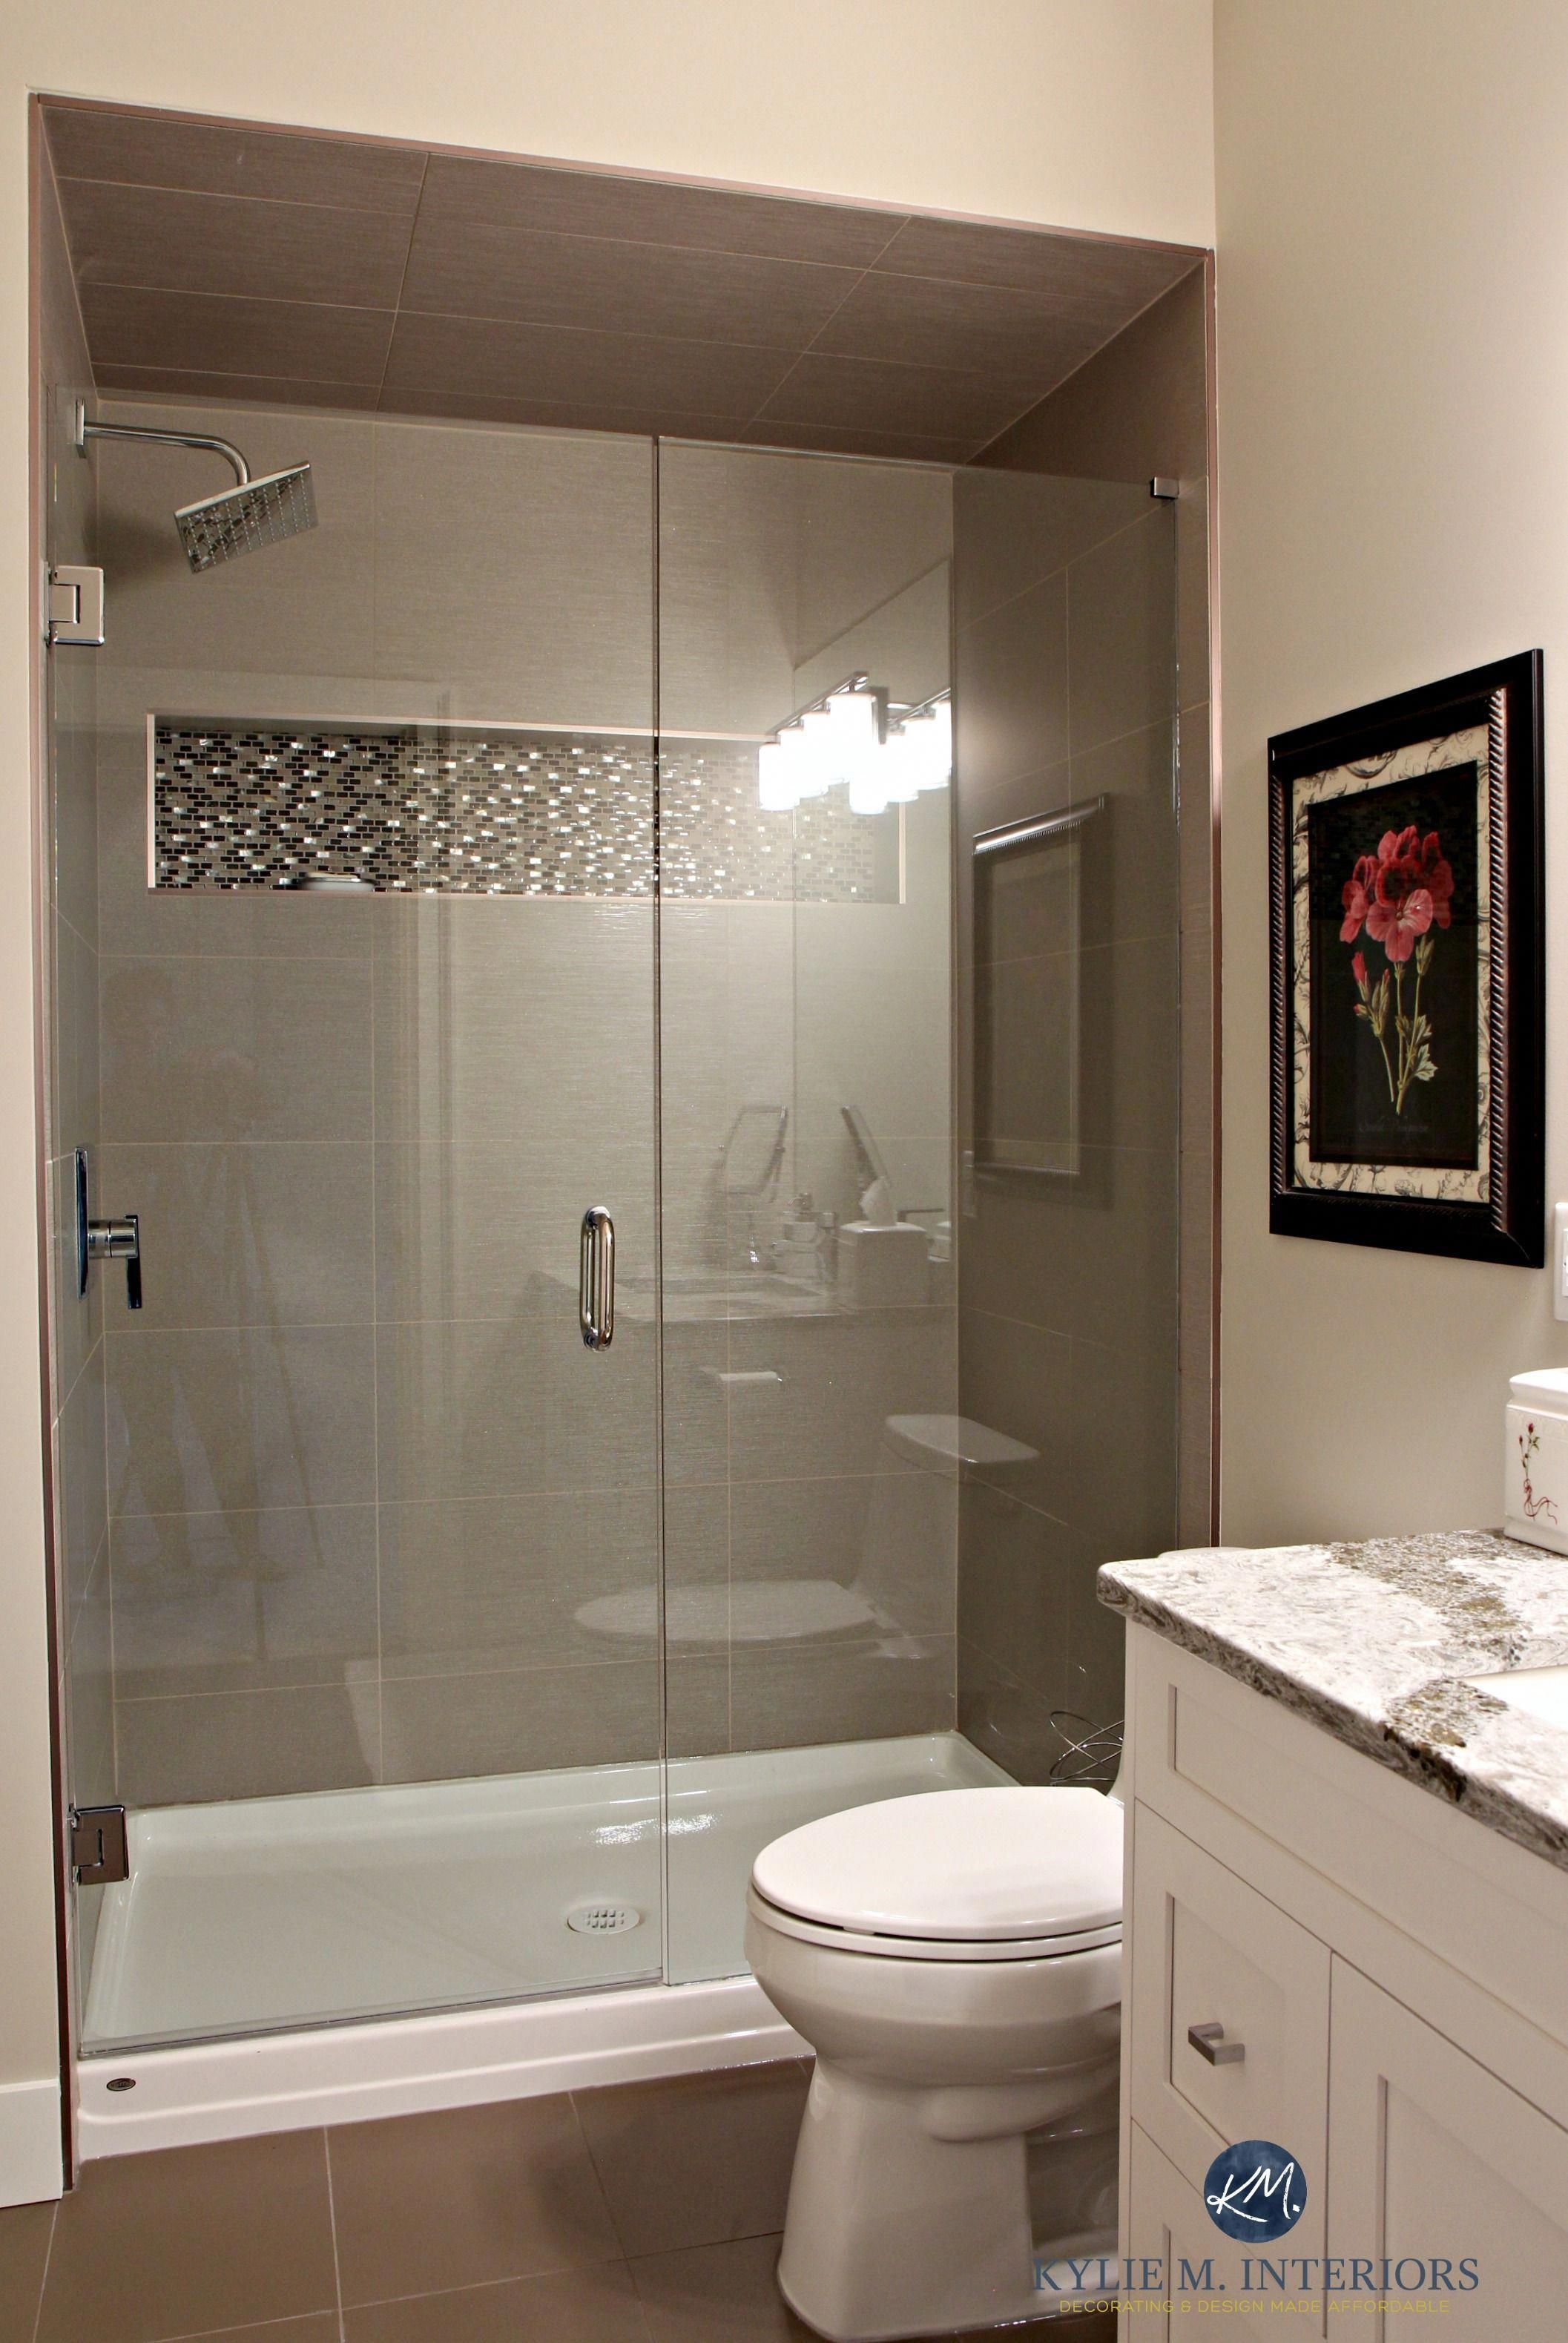 6 Friendly Cool Ideas Mobile Home Bathroom Remodel Website Retro Bathroom R Small Bathroom Remodel Bathroom Remodel Small Budget Bathroom Remodel Small Shower